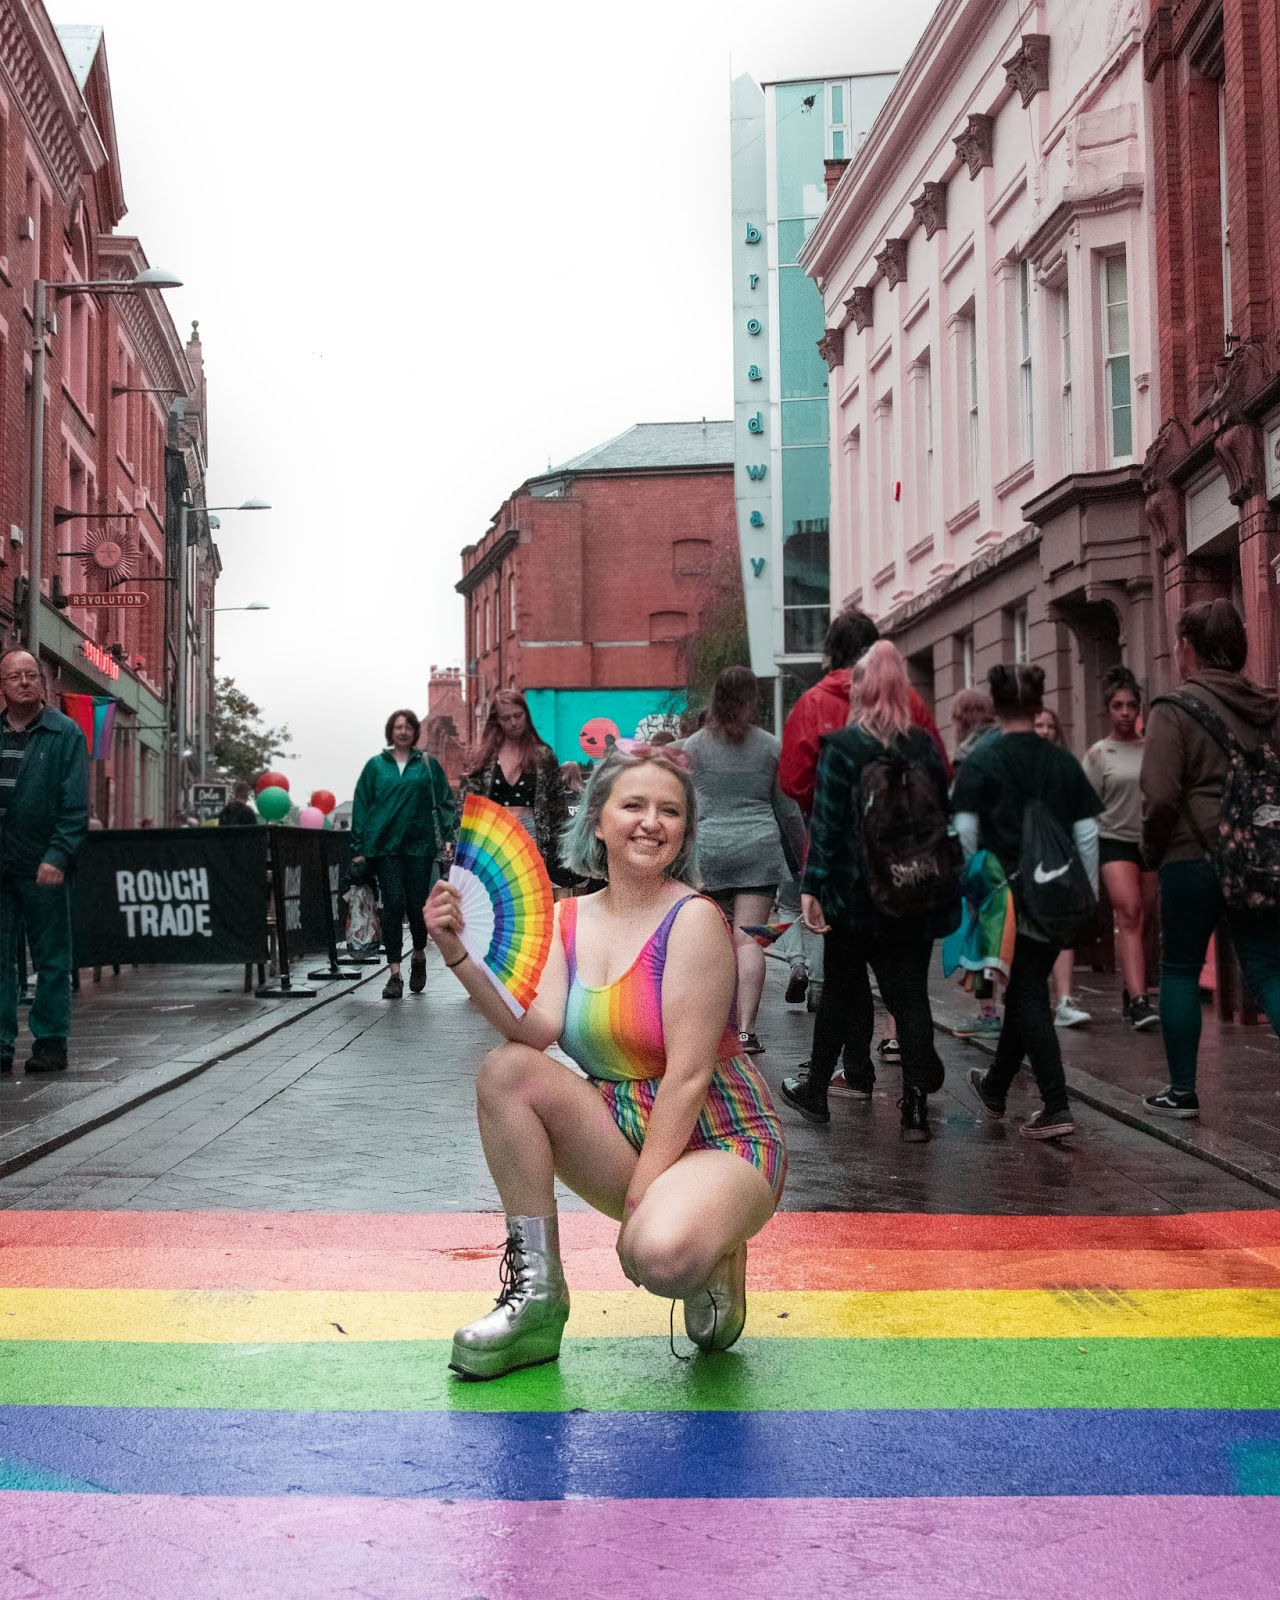 Me, Crouched in the centre of a rainbow crossing holding a fan and wearing rainbow clothing